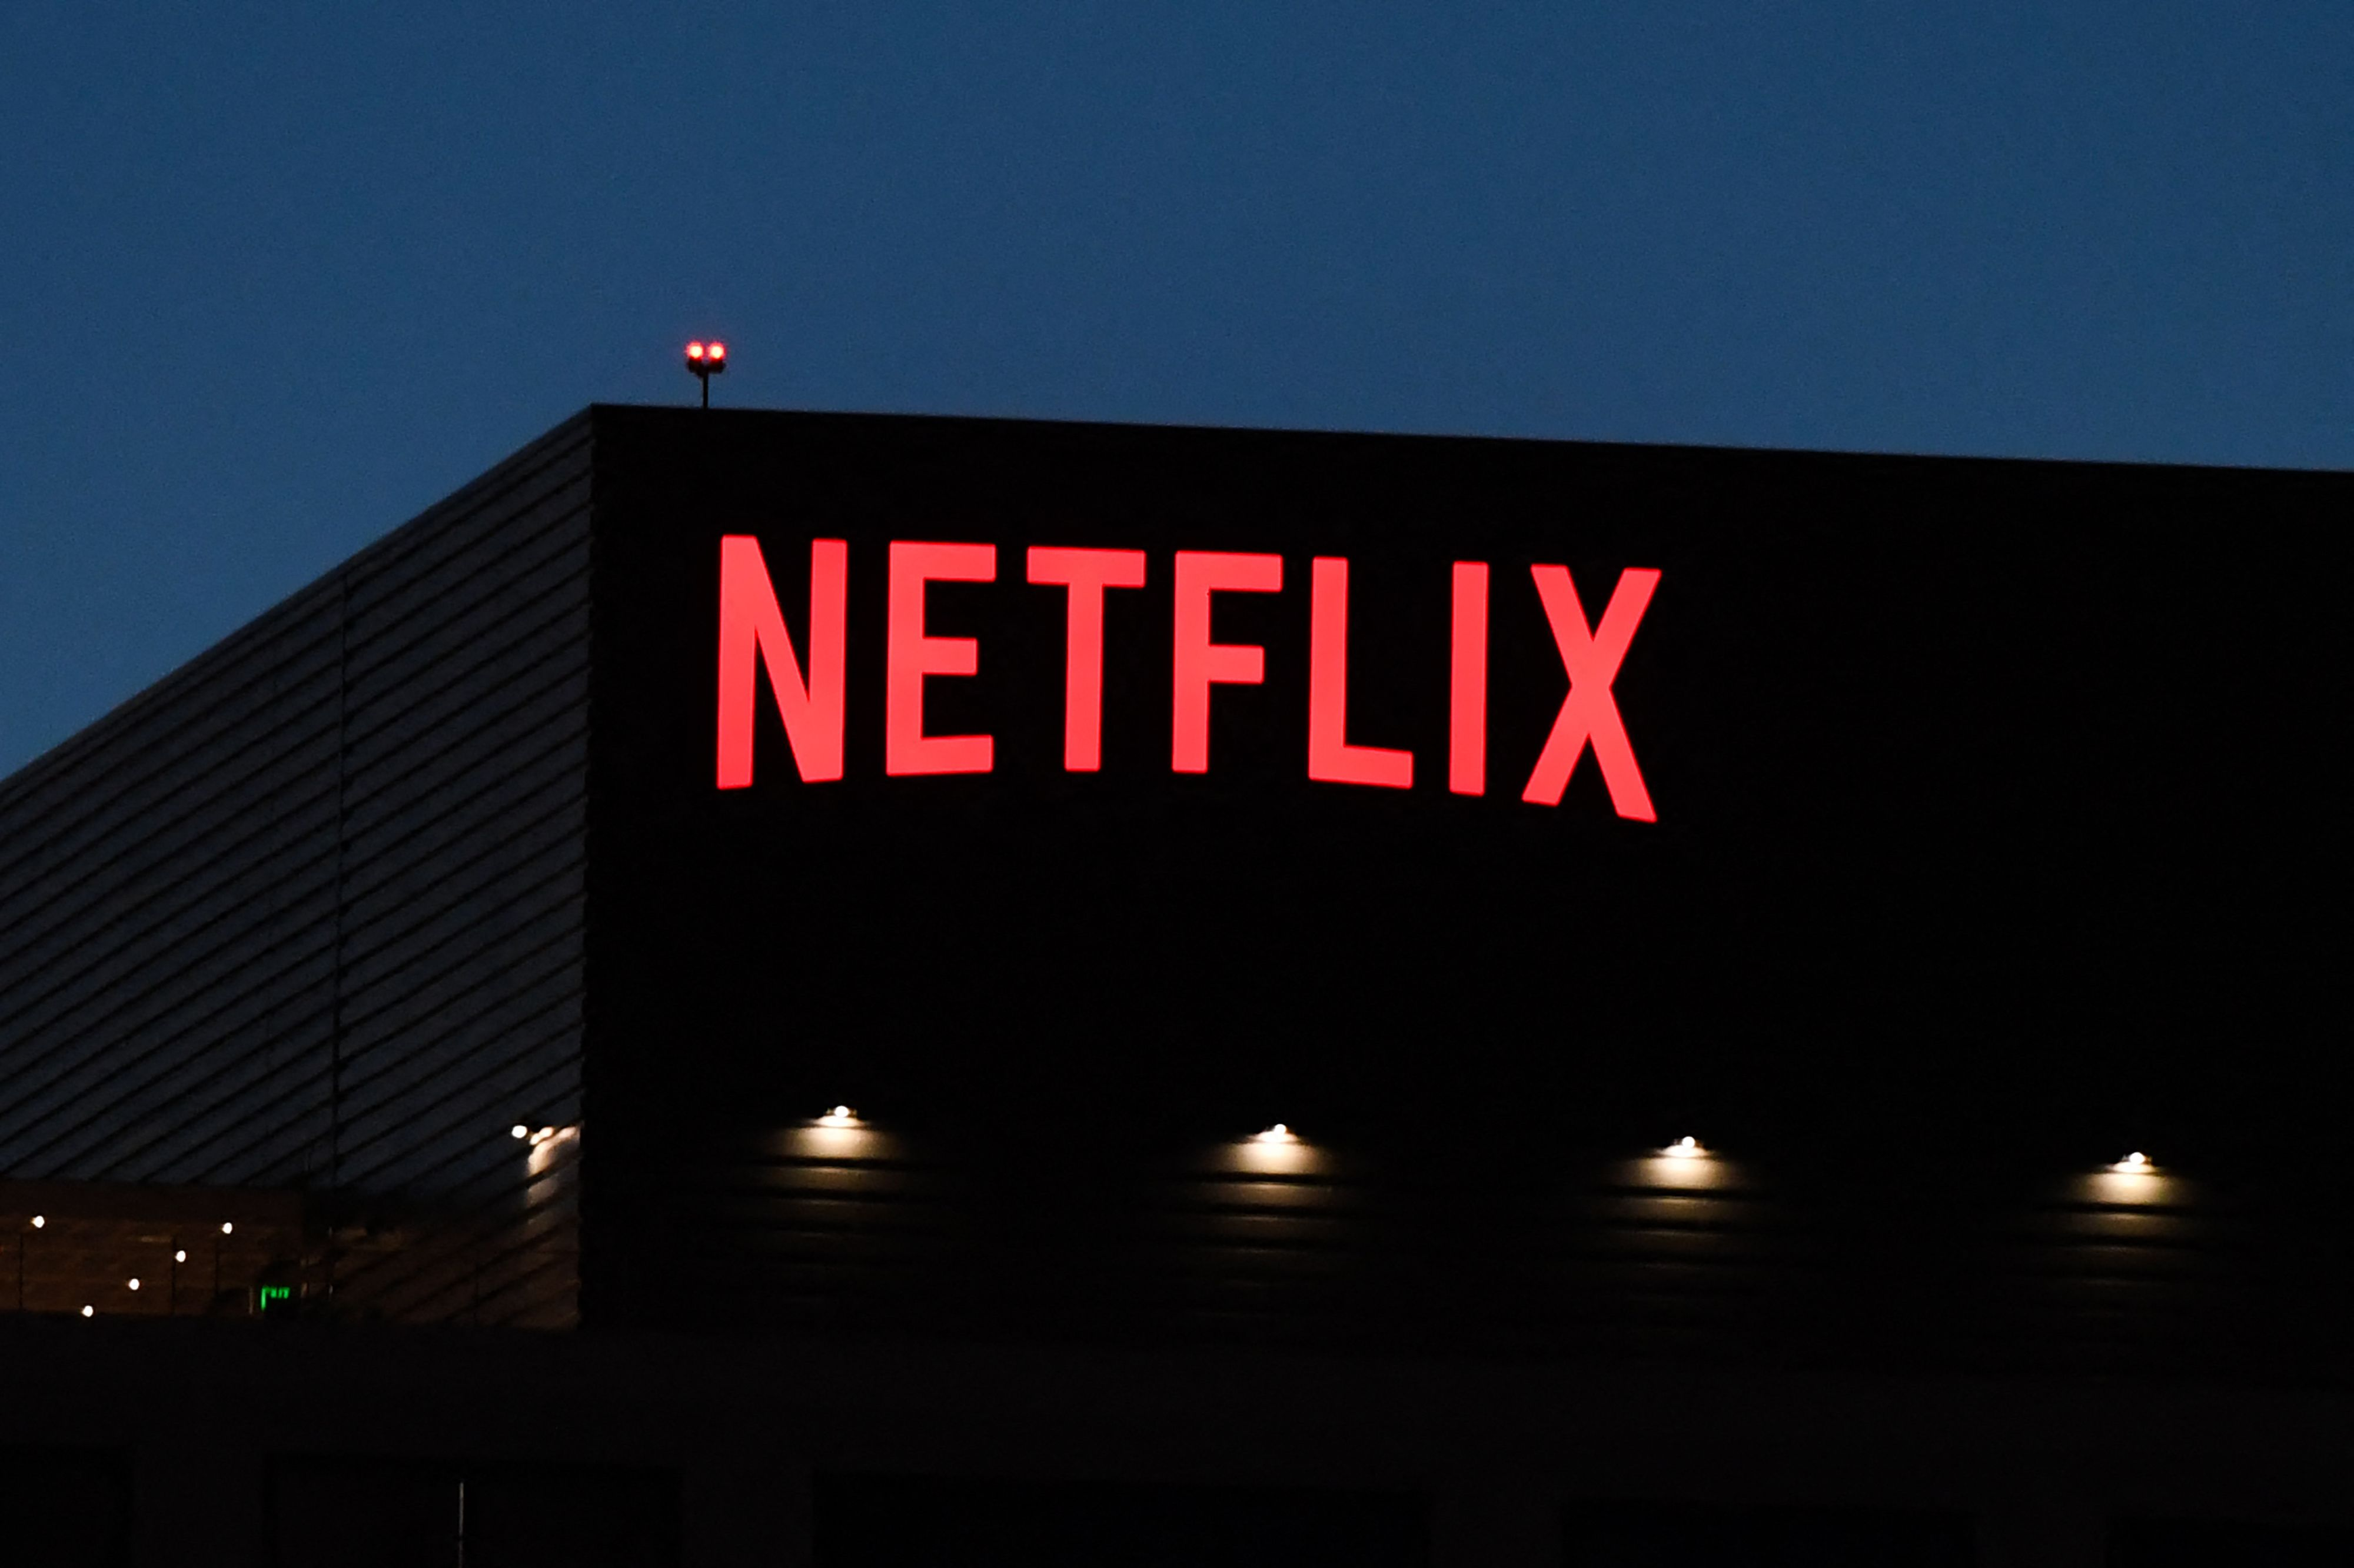 The Netflix logo is seen on the Netflix, Inc. building on Sunset Boulevard in Los Angeles, California